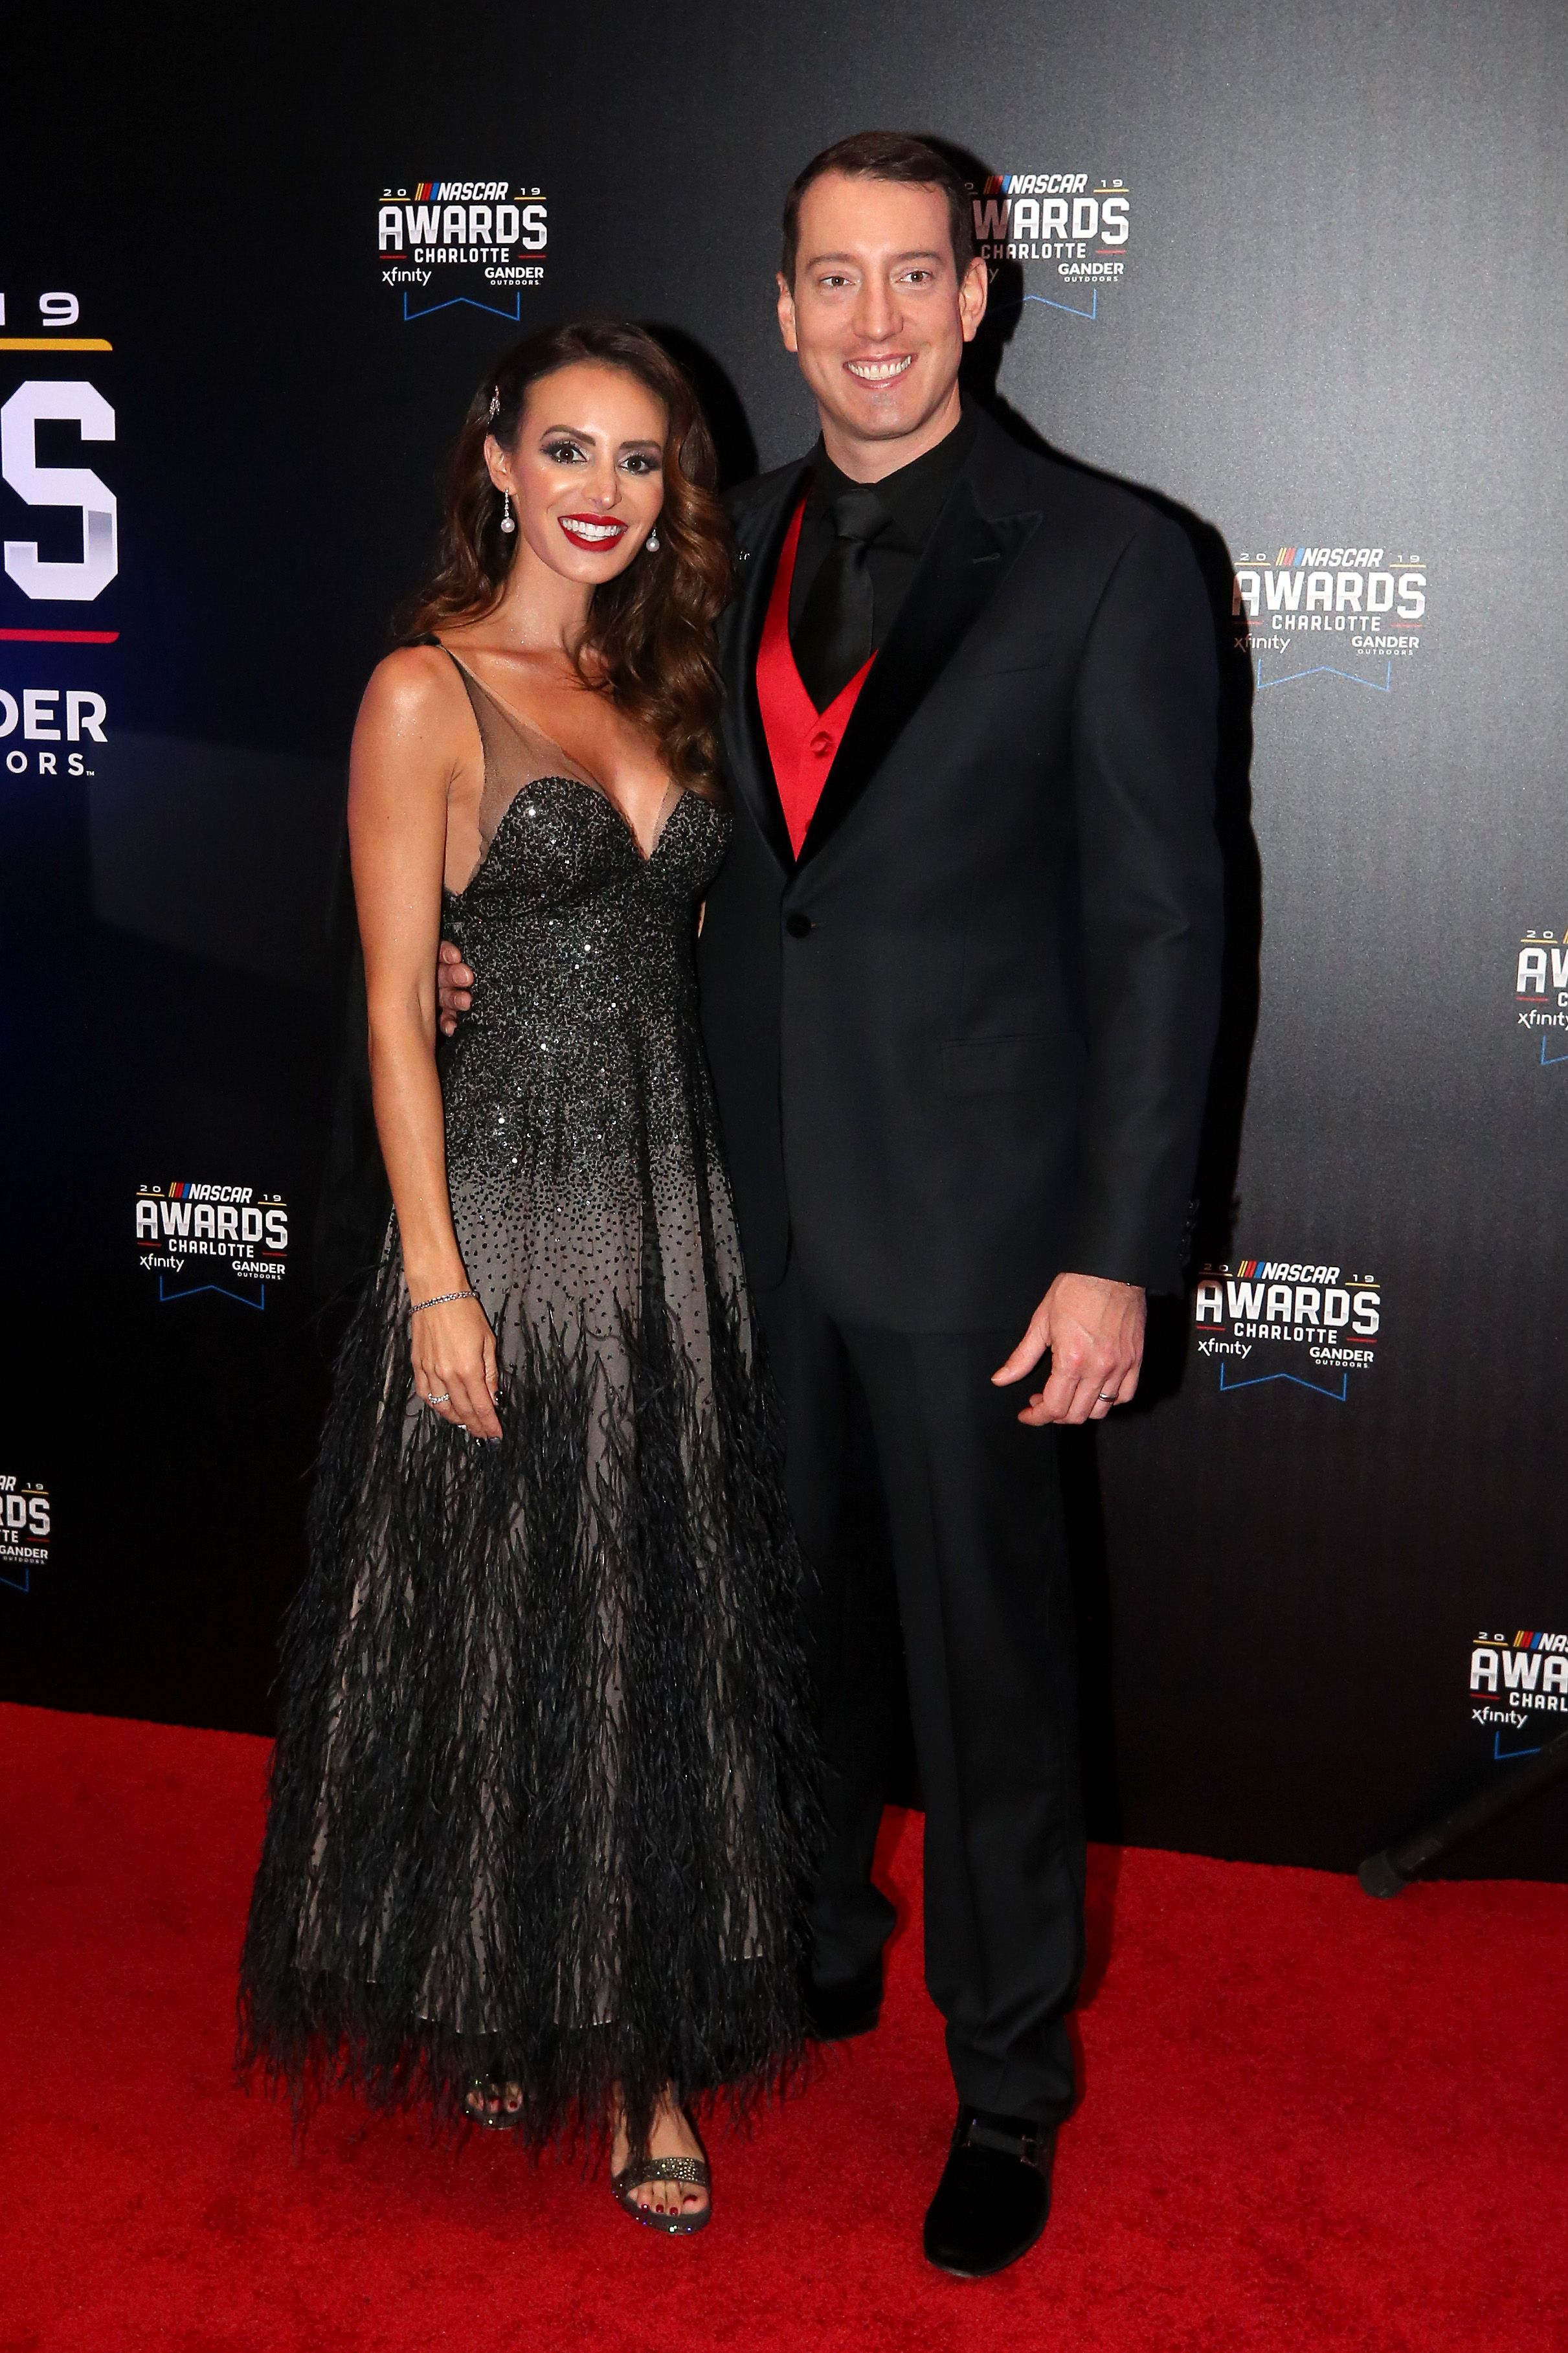 Kyle Busch and Samantha Busch at the NASCAR Xfinity Series on November 22, 2019 in Charlotte, North Carolina | Photo: Getty Images